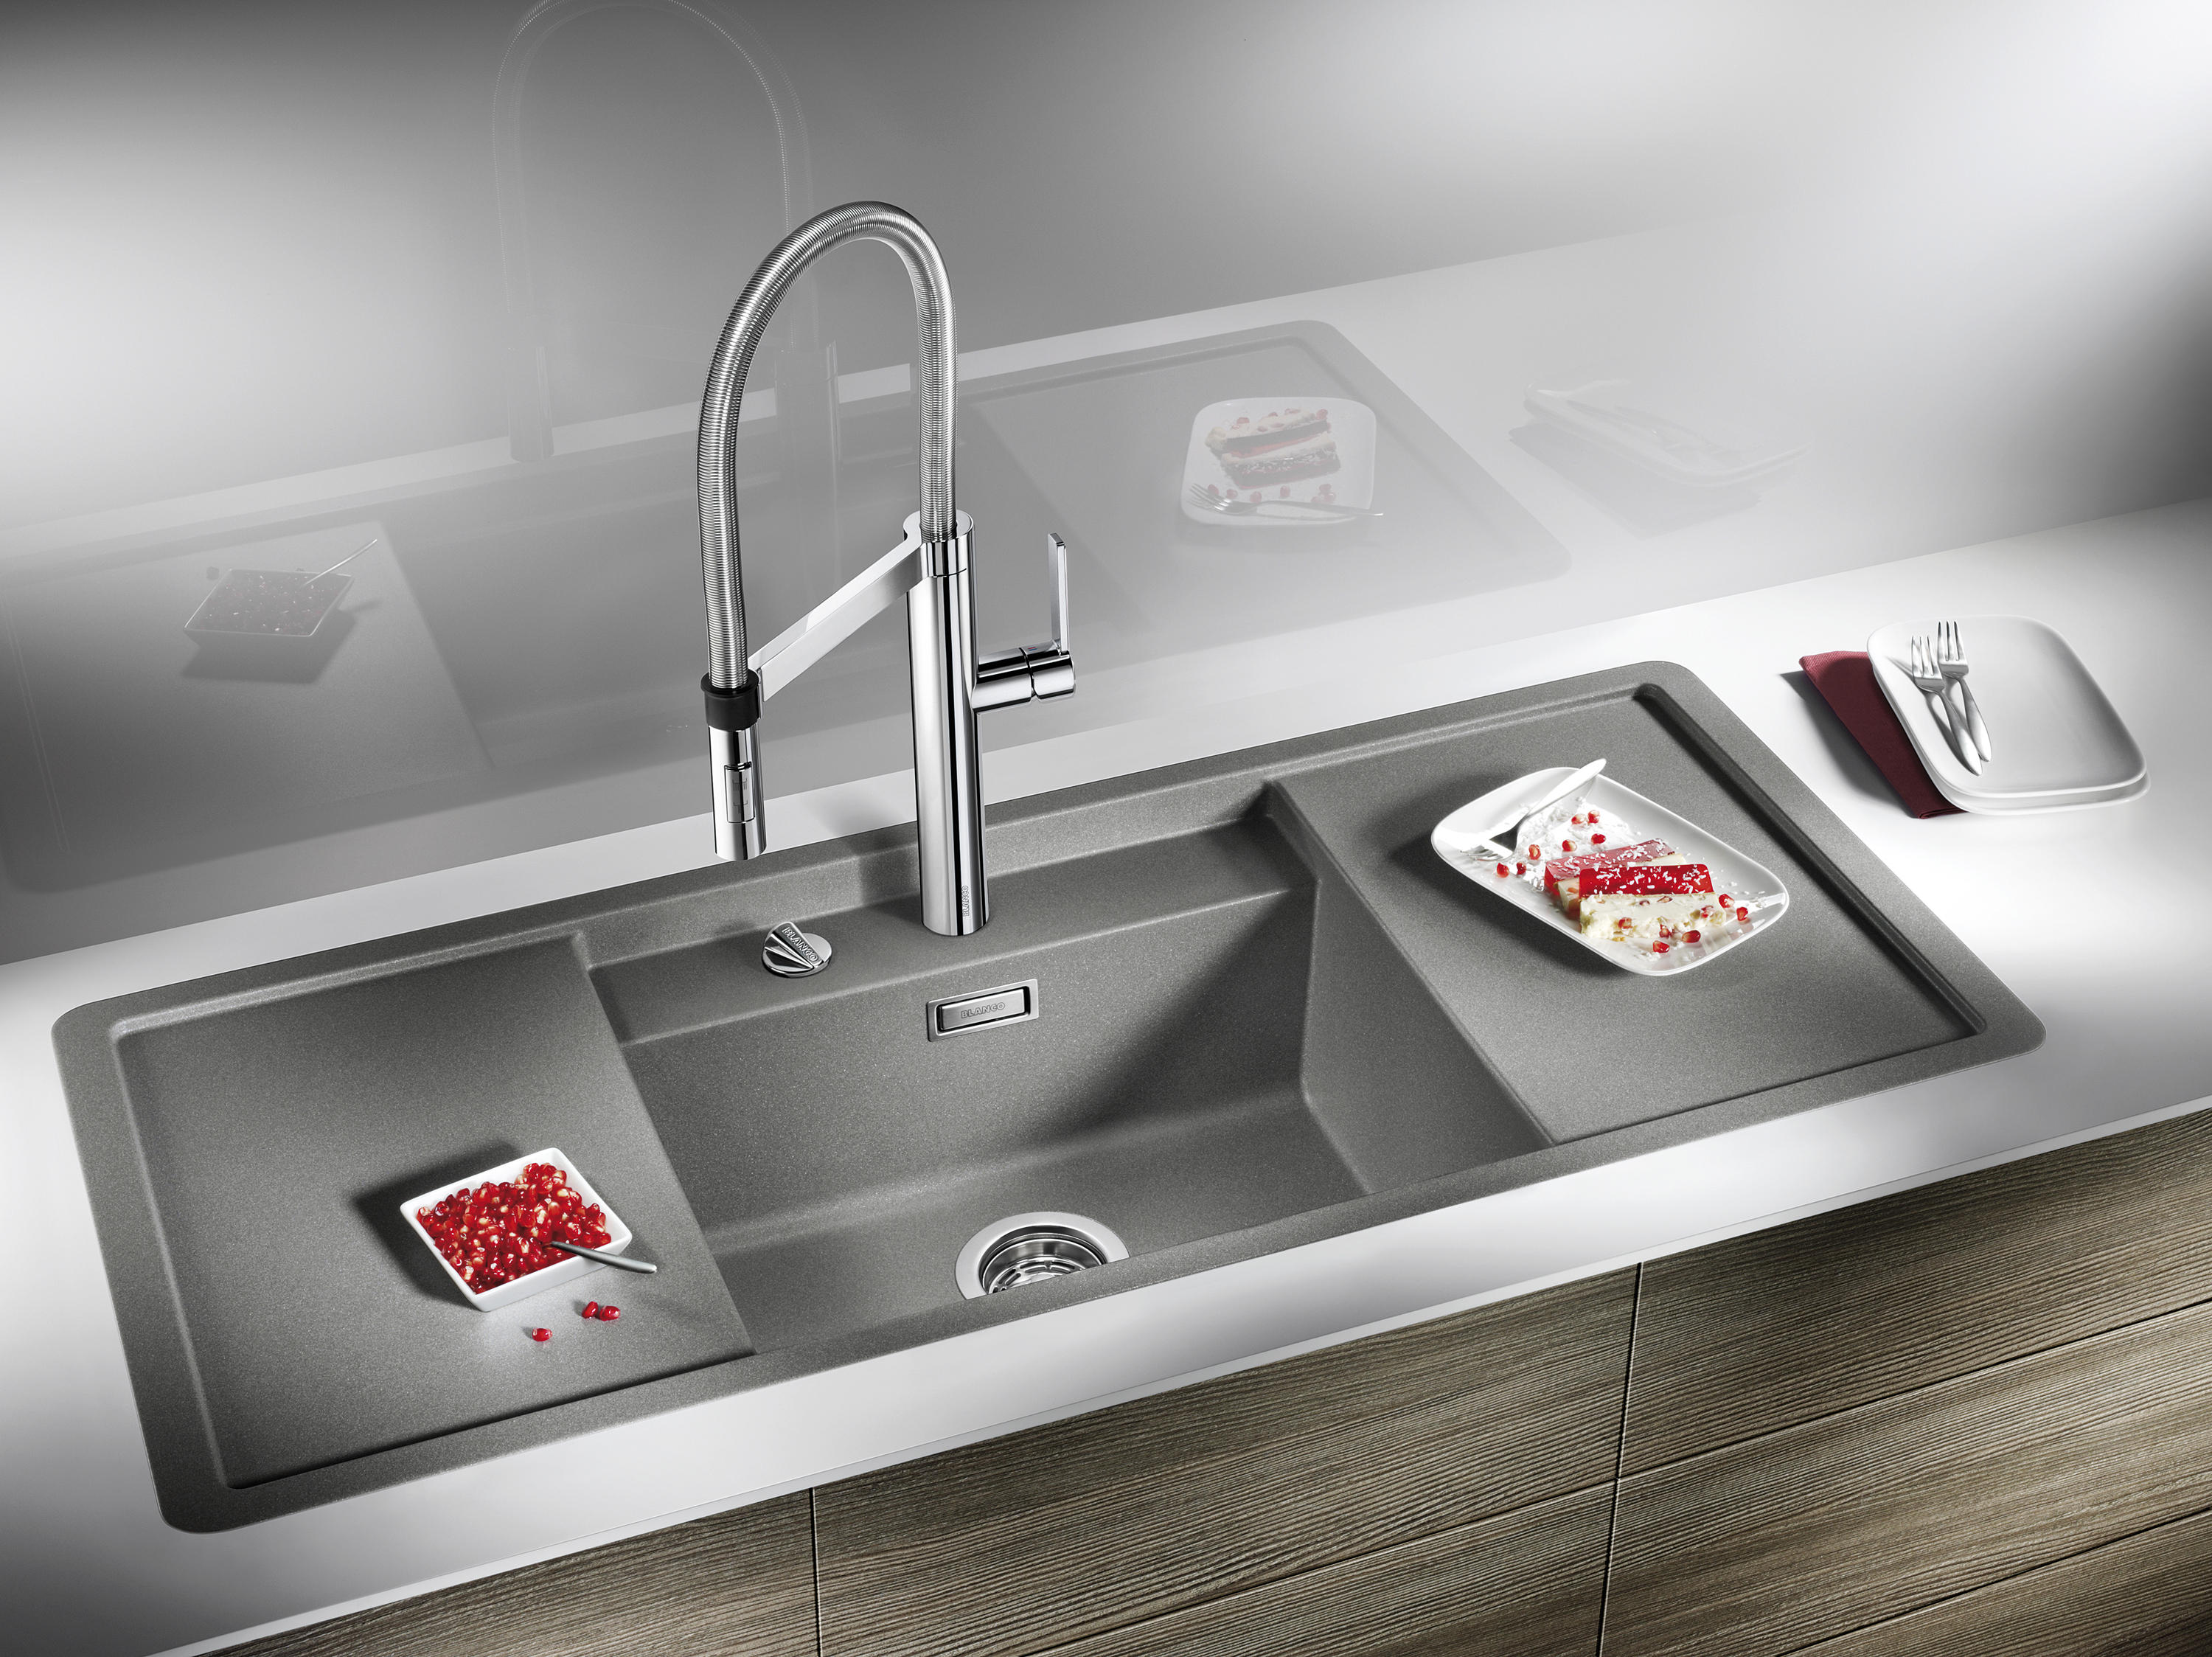 Blanco Sink Dealers : BLANCO ALAROS 6 S SILGRANIT Anthracite - Kitchen sinks by Blanco ...